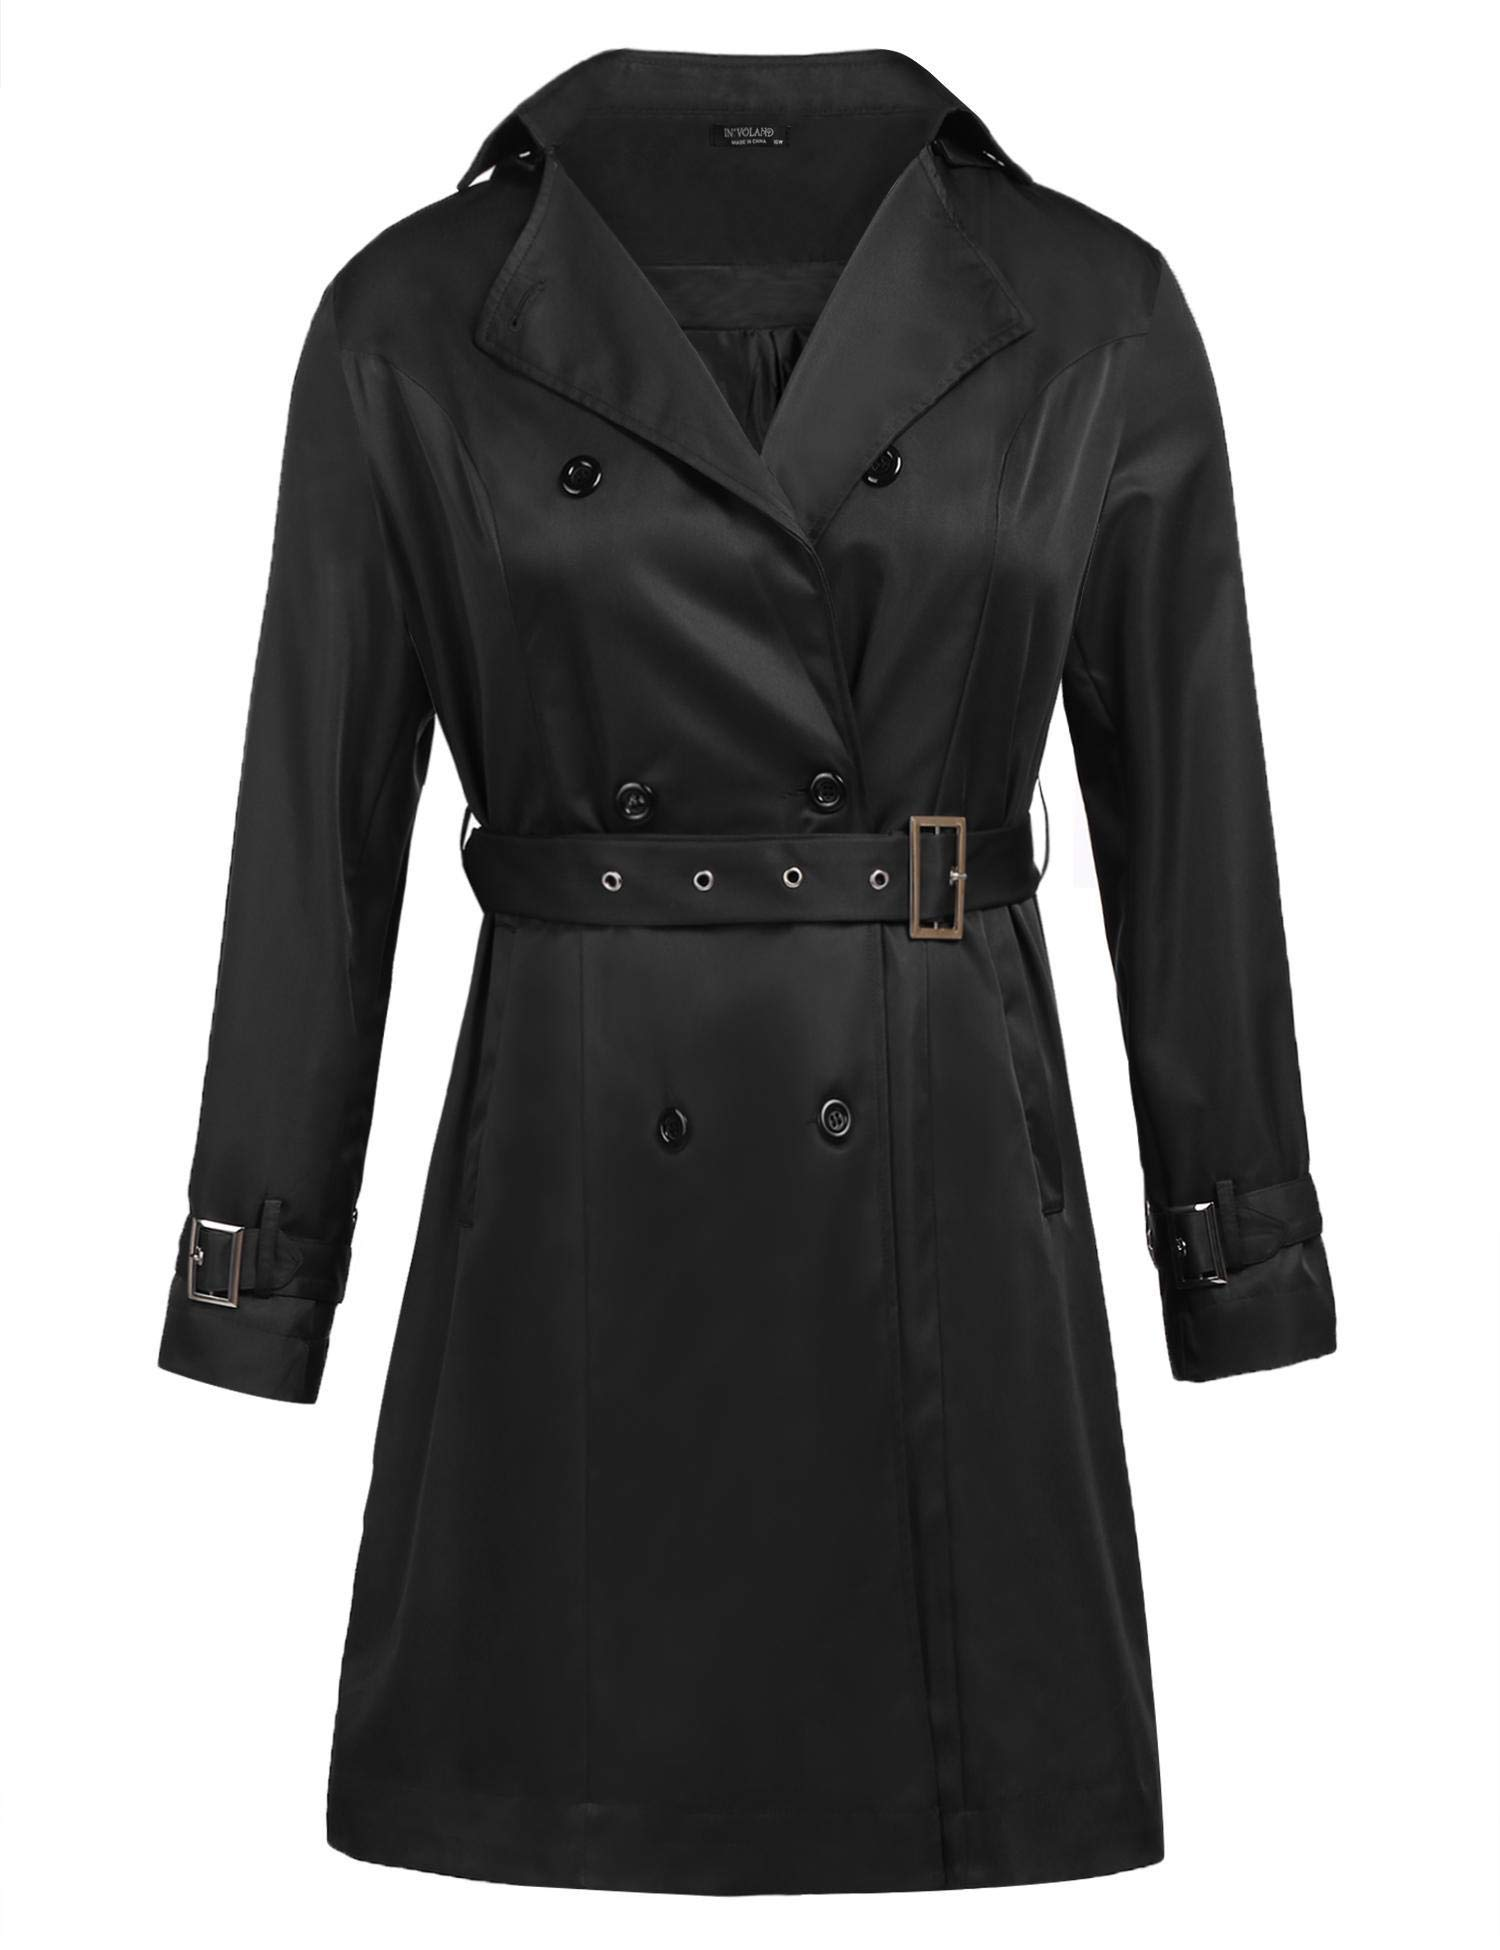 IN'VOLAND Women's Plus Size Trench Coat Double-Breasted Long Hooded Overcoat with Belt